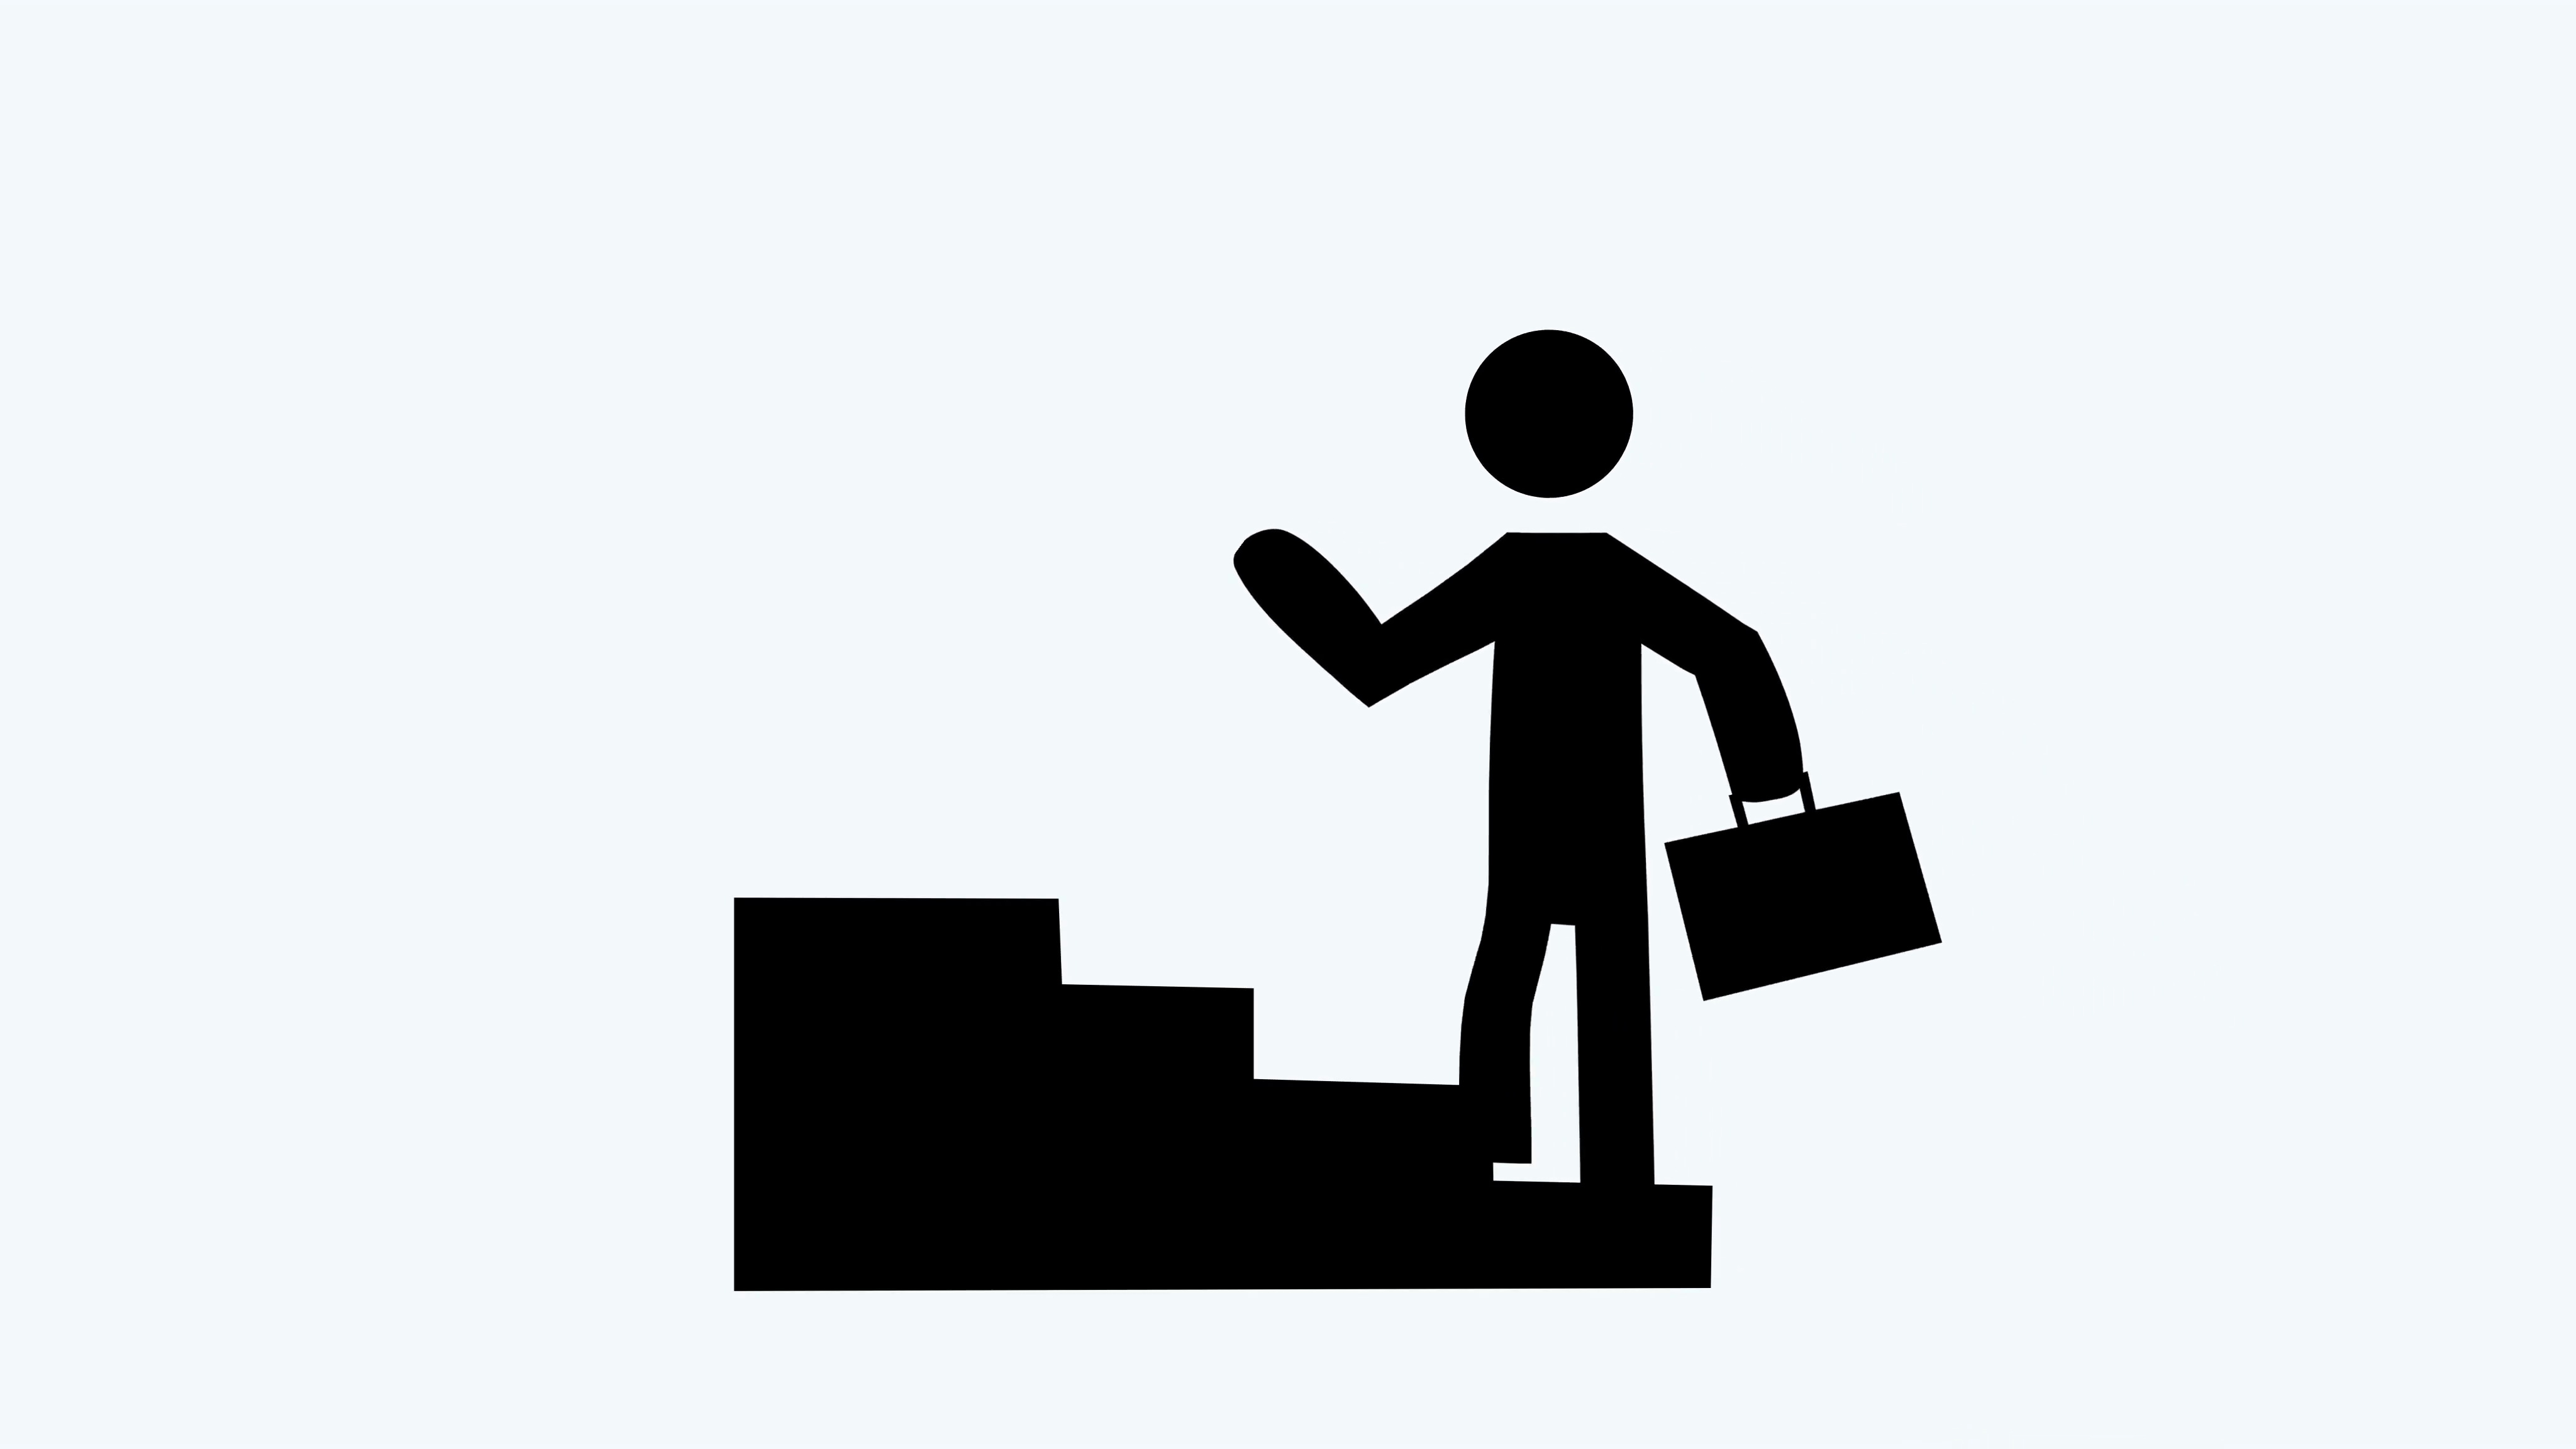 4096x2304 3556 Business Success Animation Man Walking Up Stairs On White, 4k